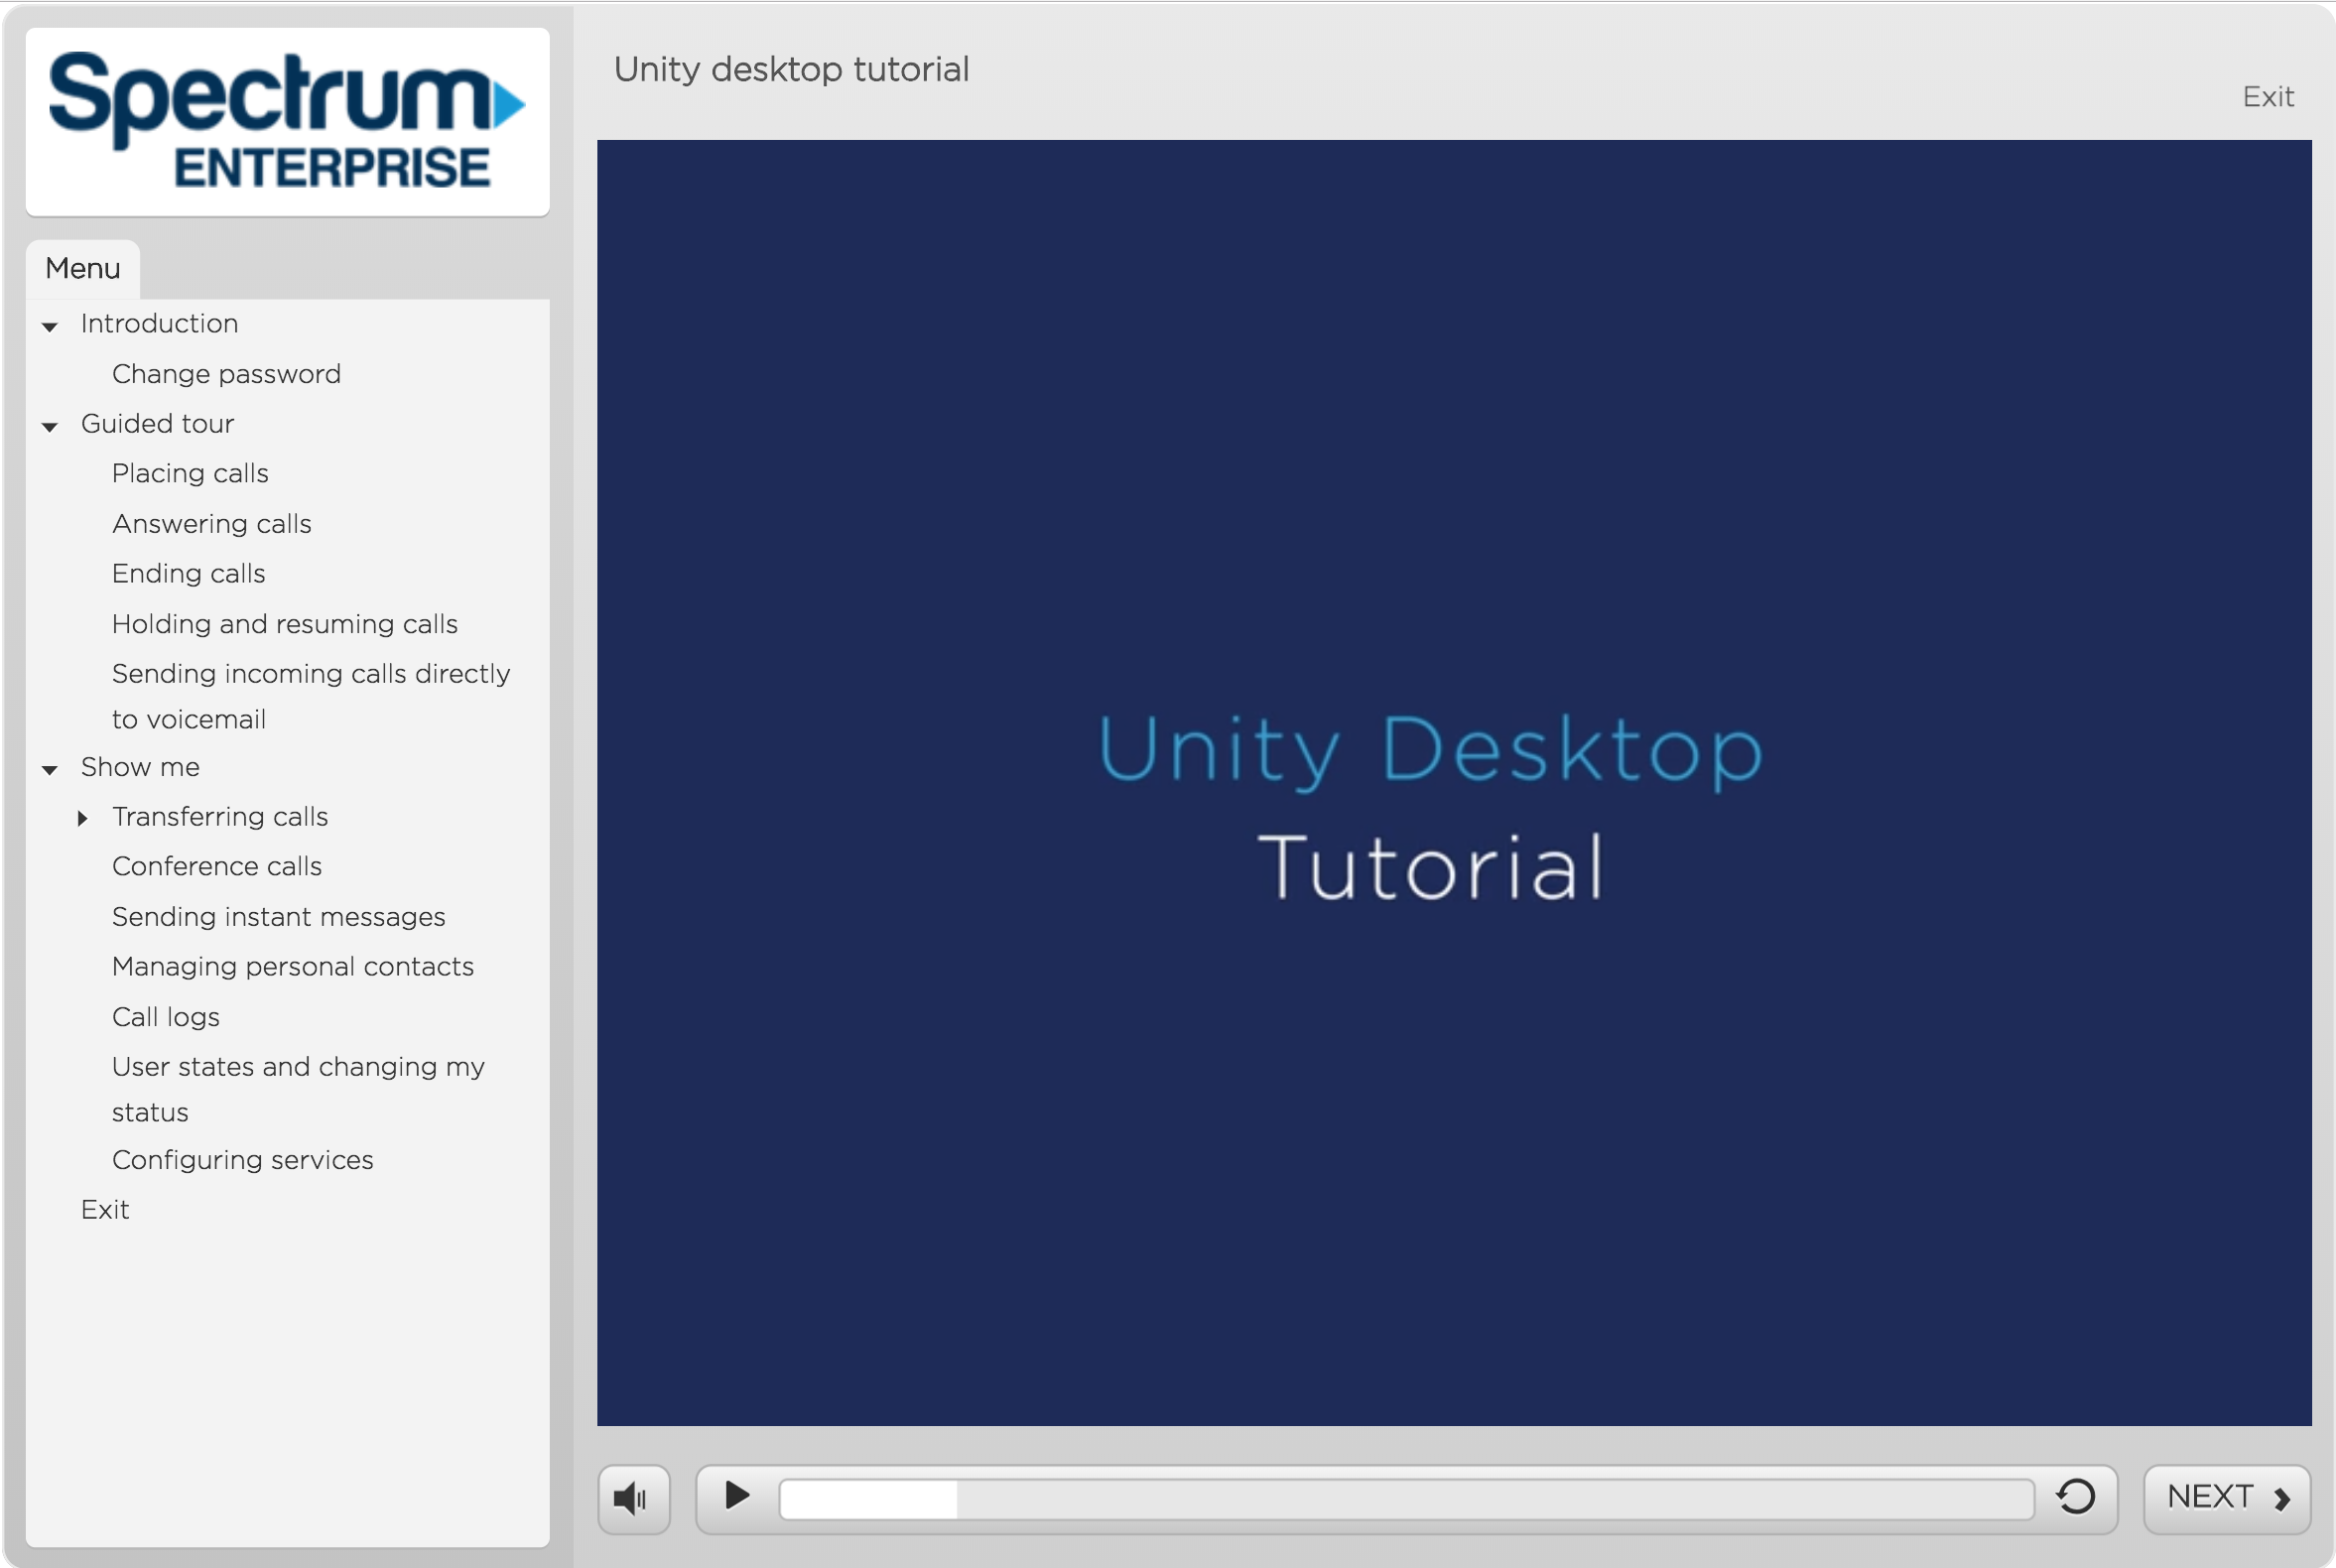 Unity desktop application tutorial